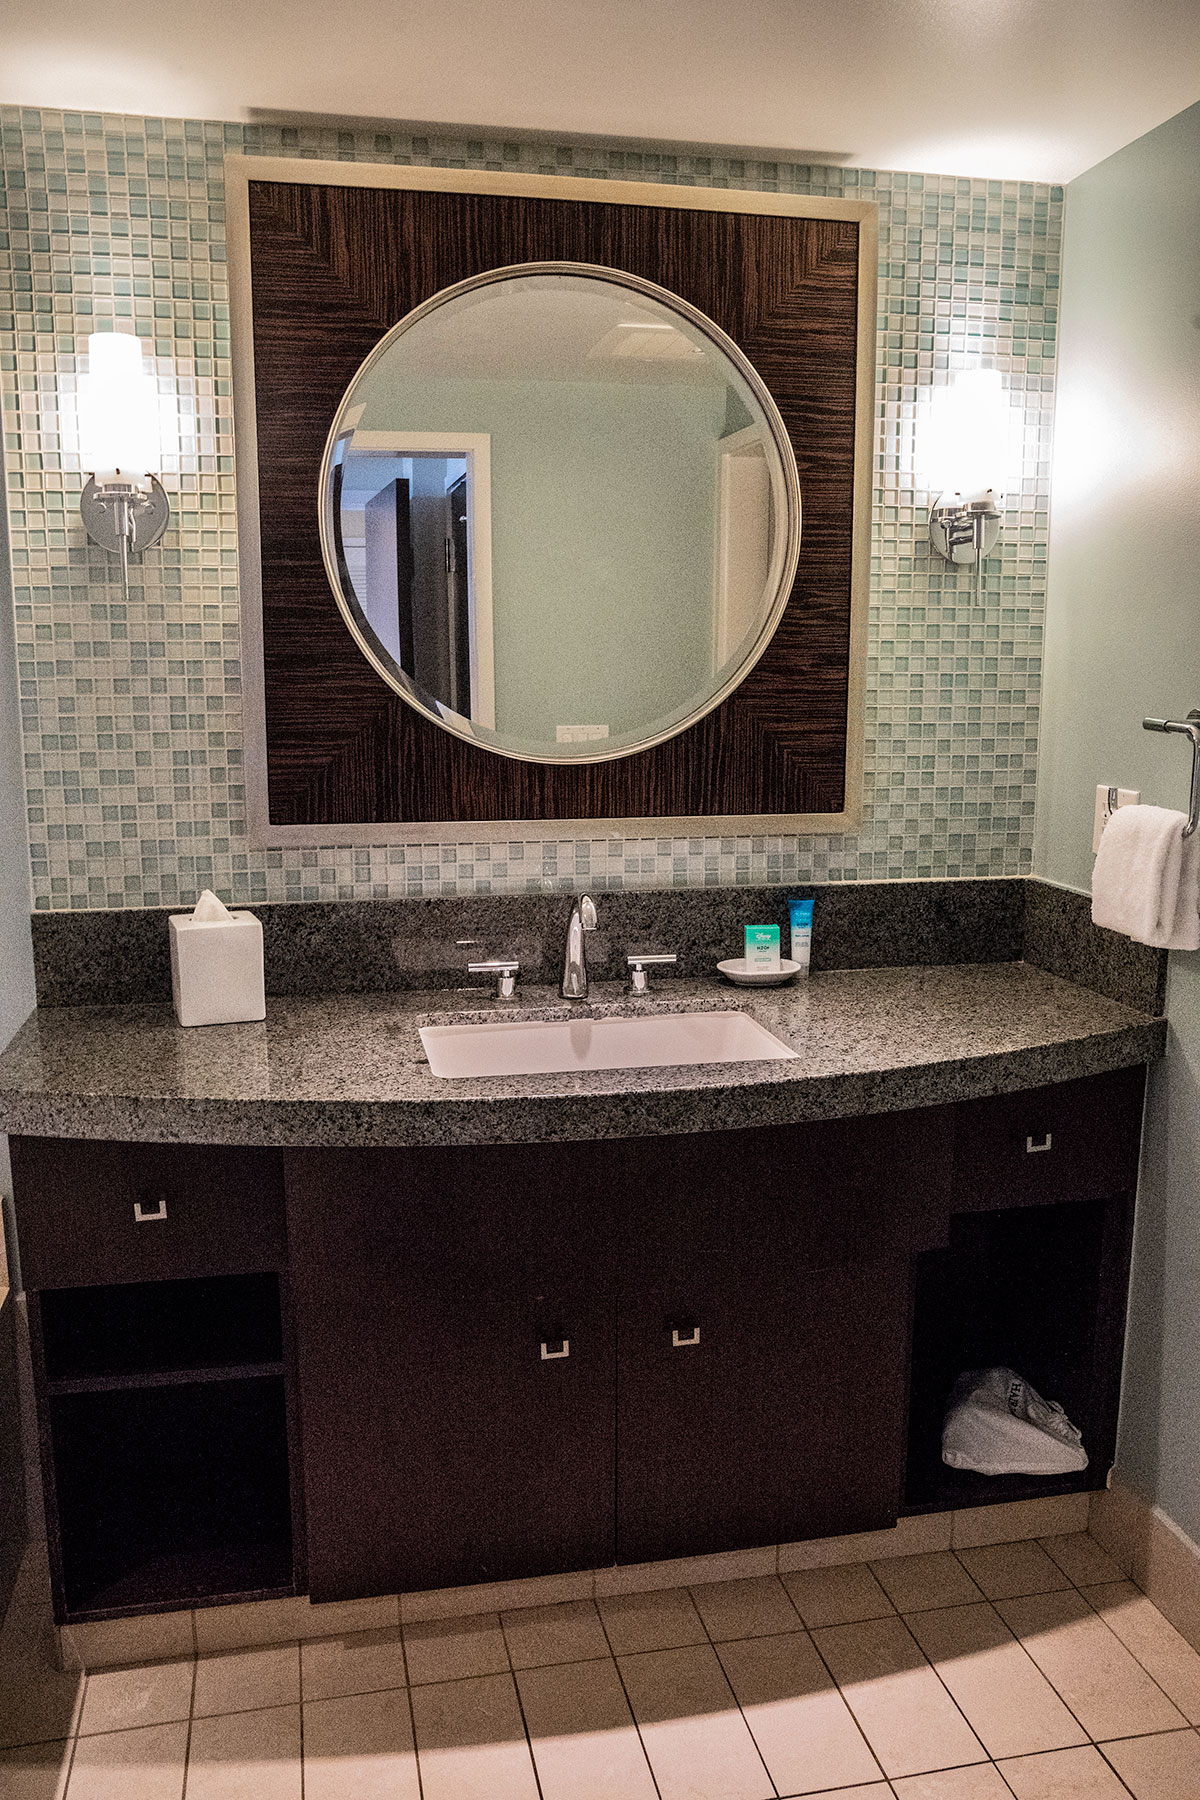 Bathroom-One-Bderoom-Suite-Disney-Contemporary